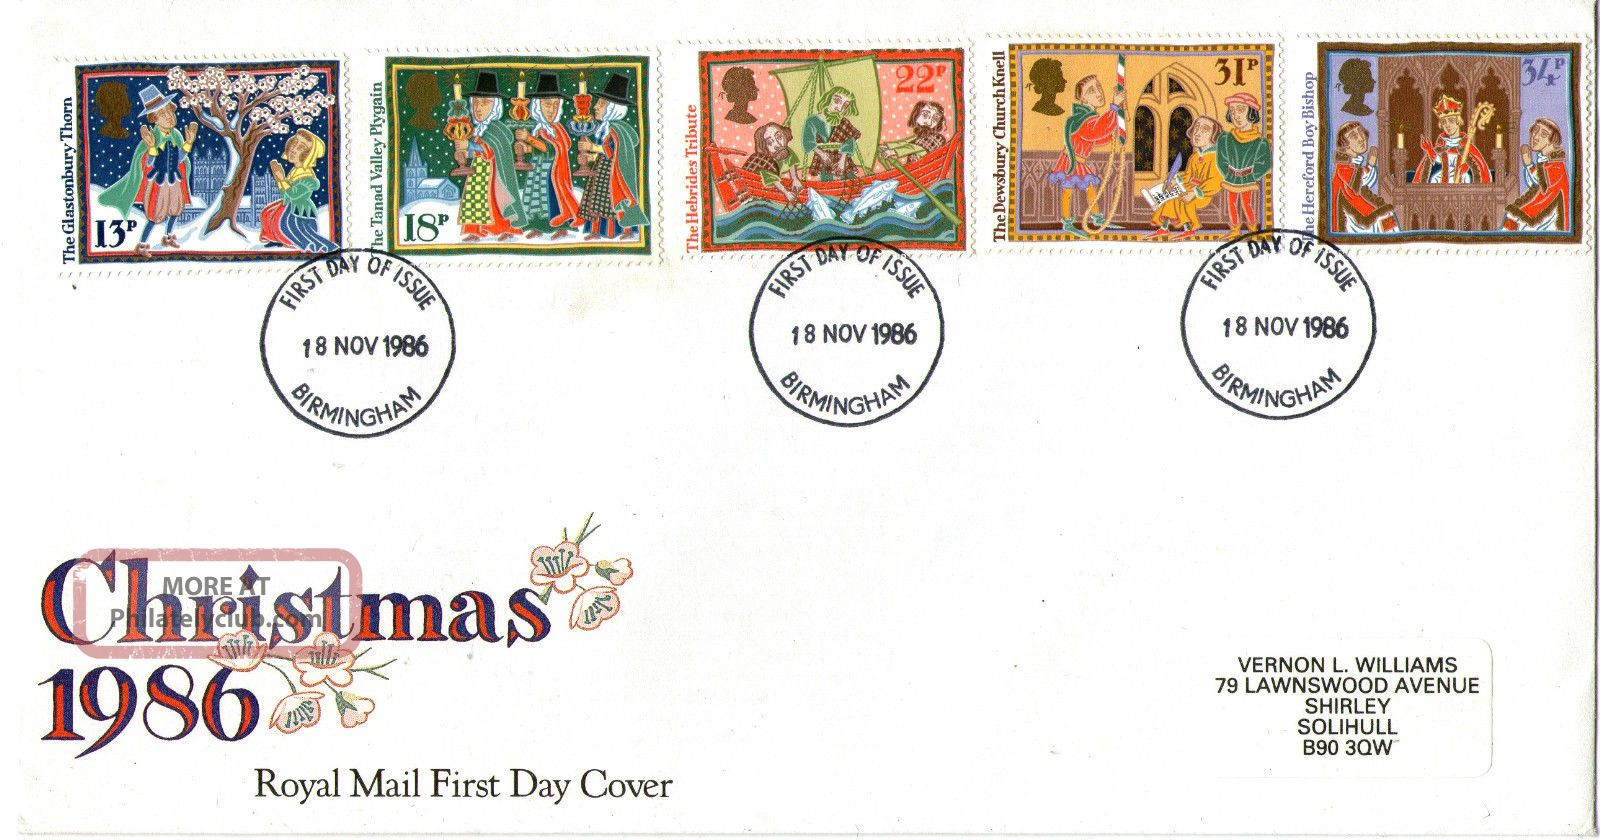 18 November 1986 Christmas Royal Mail First Day Cover Birmingham Fdi Topical Stamps photo